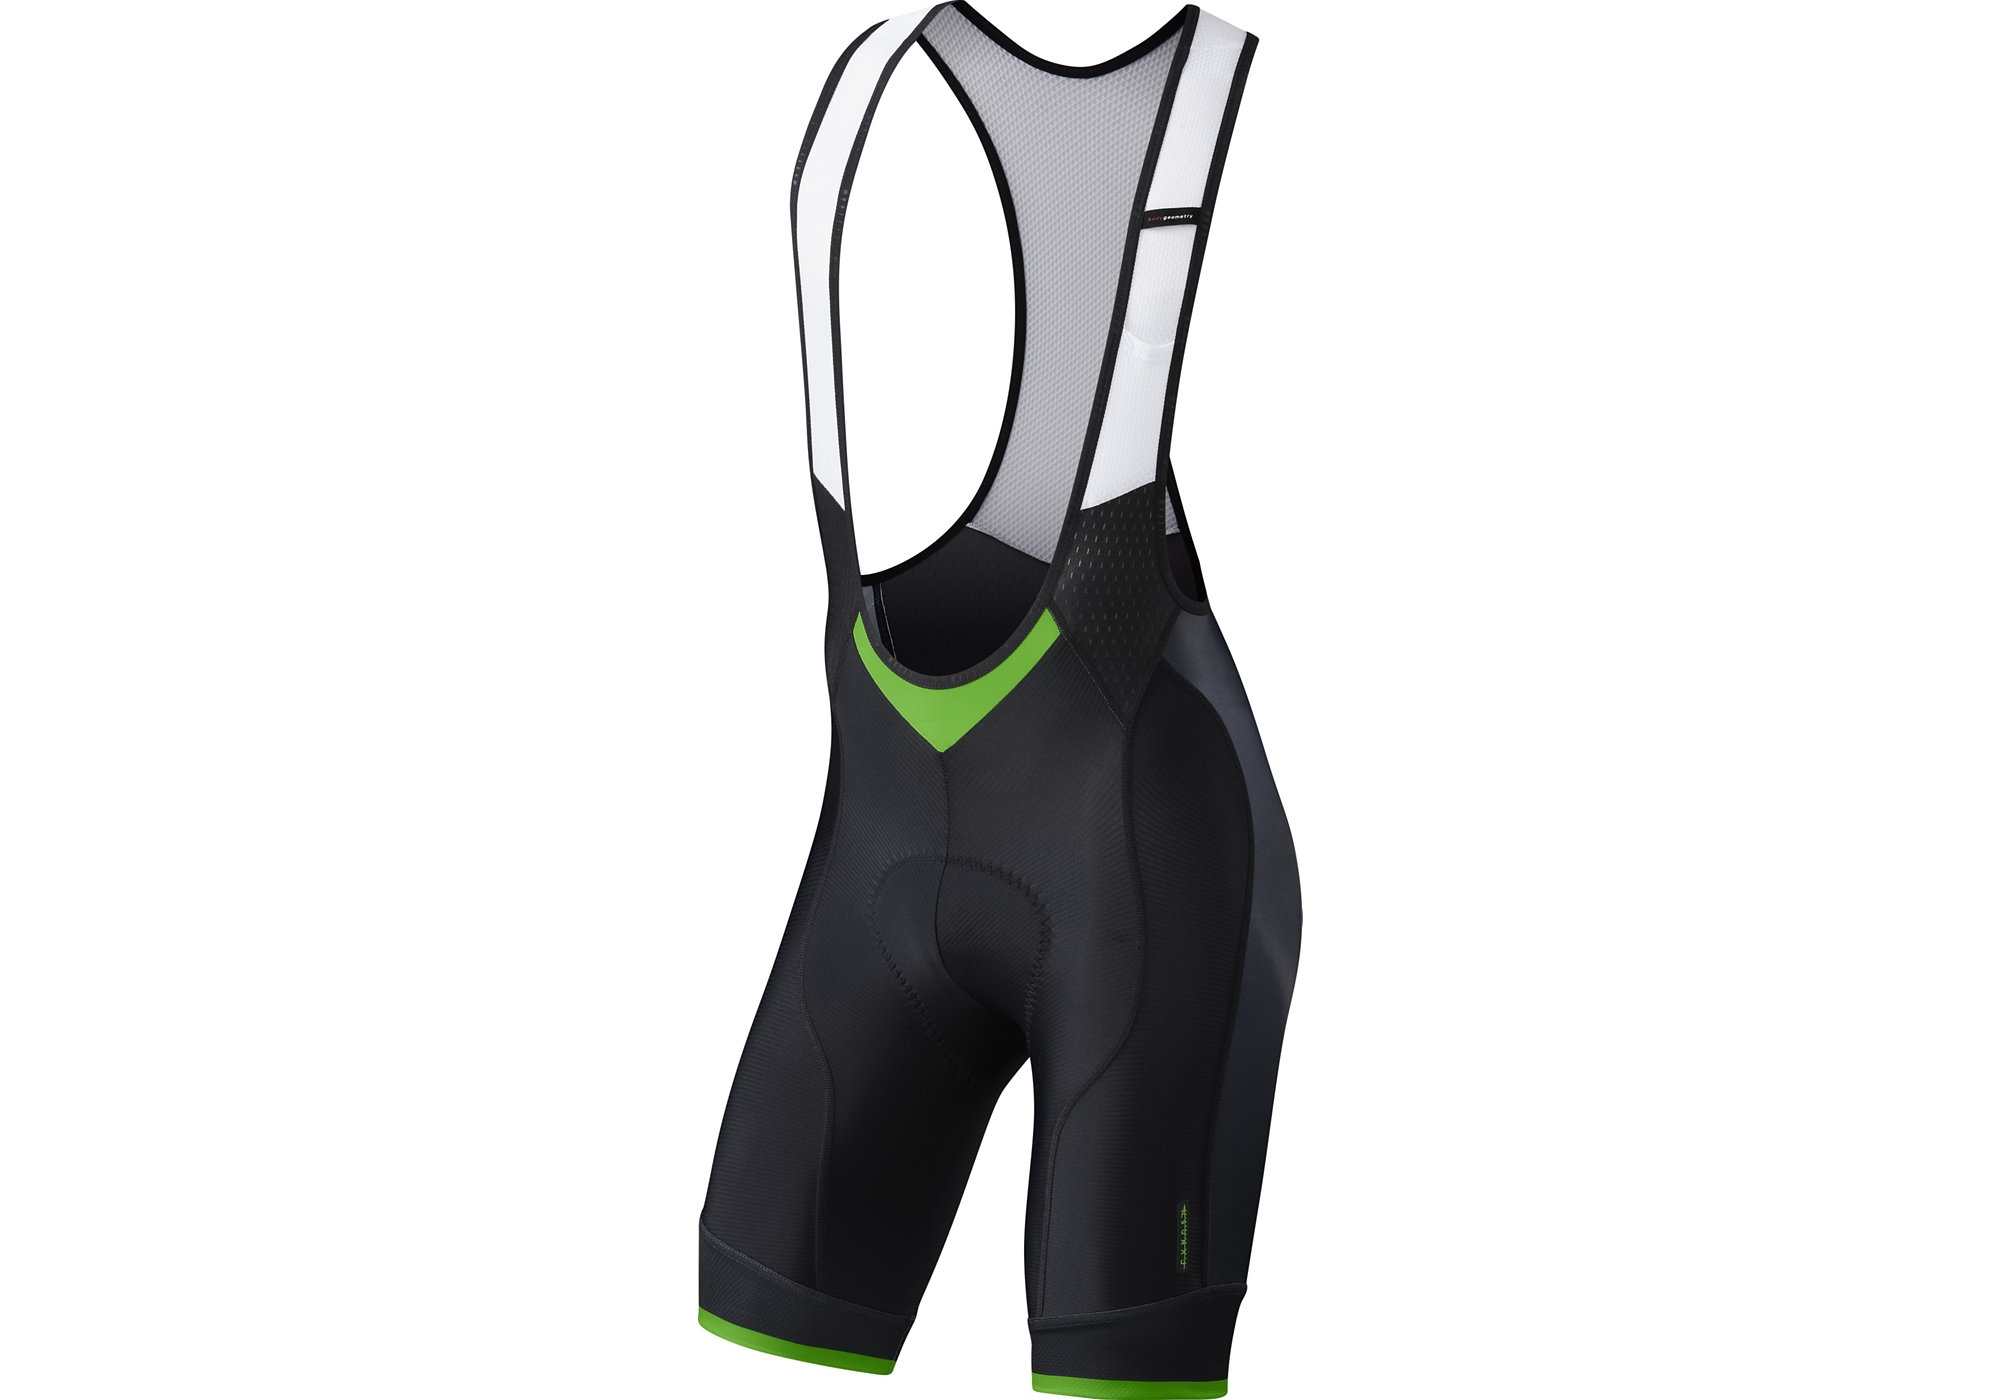 dd4fe6e910f0 2015 Specialized 2014 CVNDSH Collection Bib Short - Specialized ...